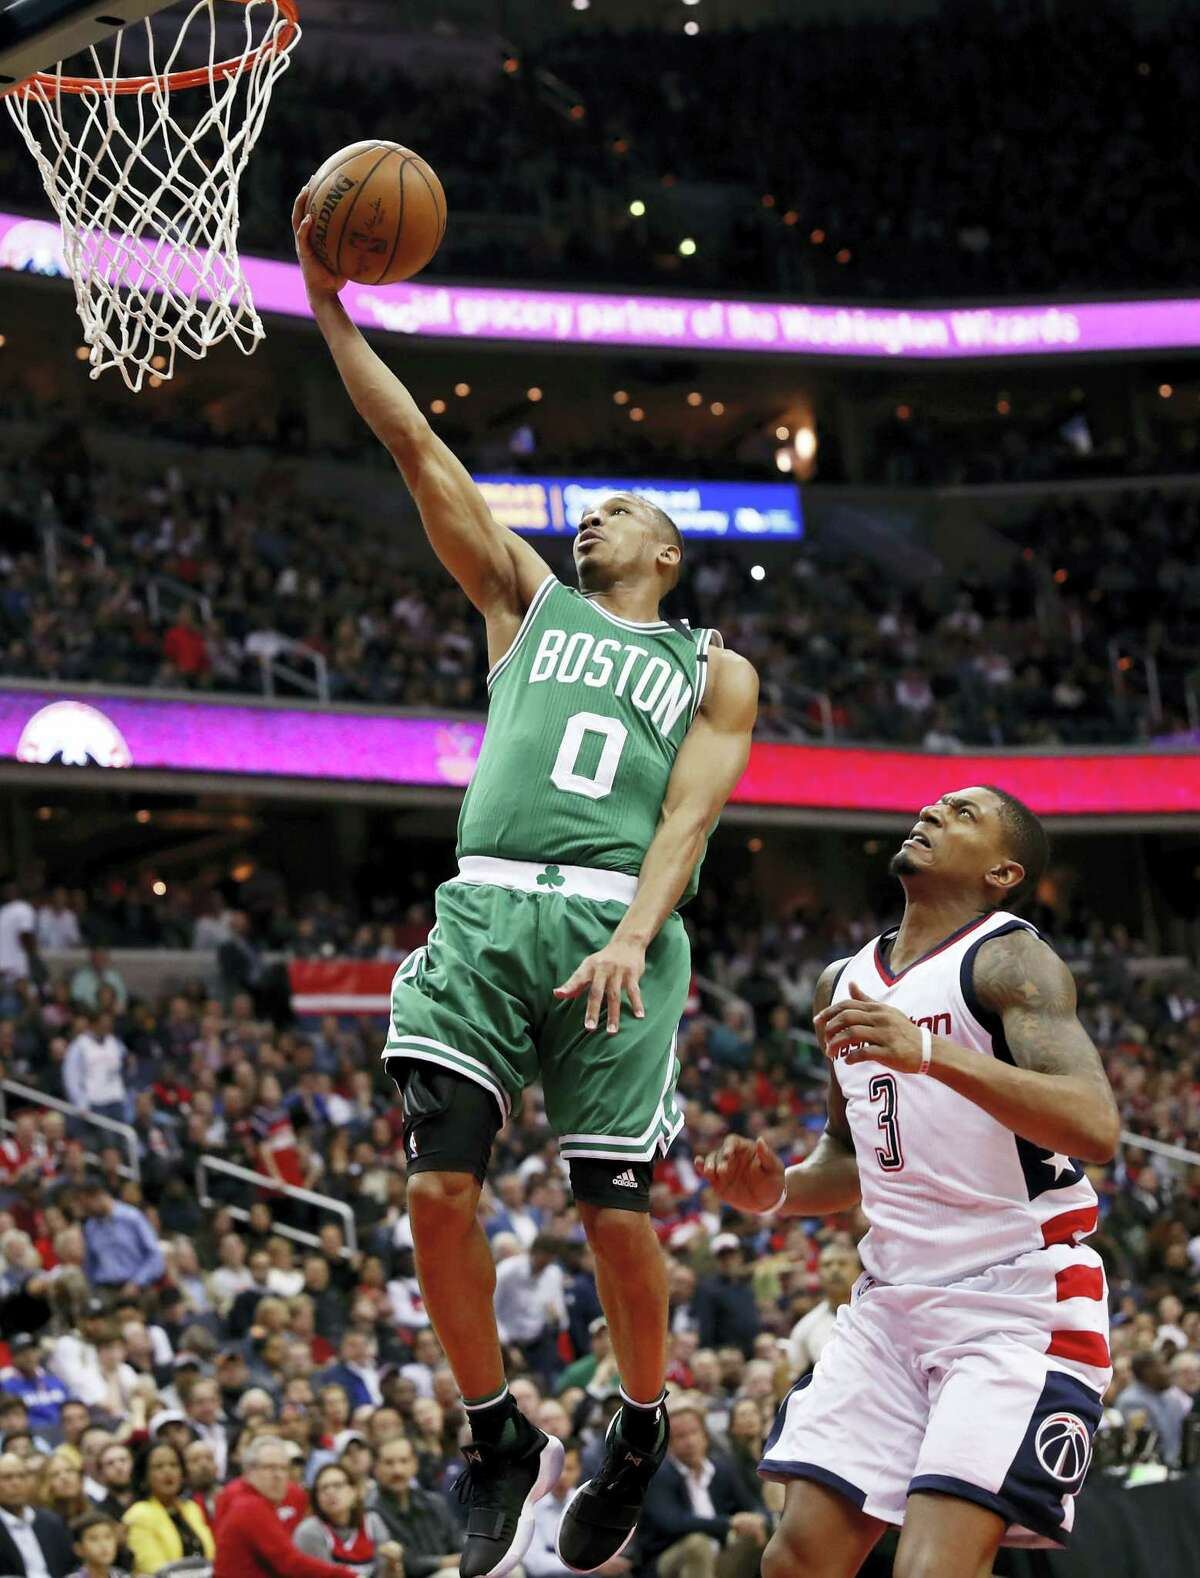 The Celtics traded Avery Bradley to the Pistons on Friday.